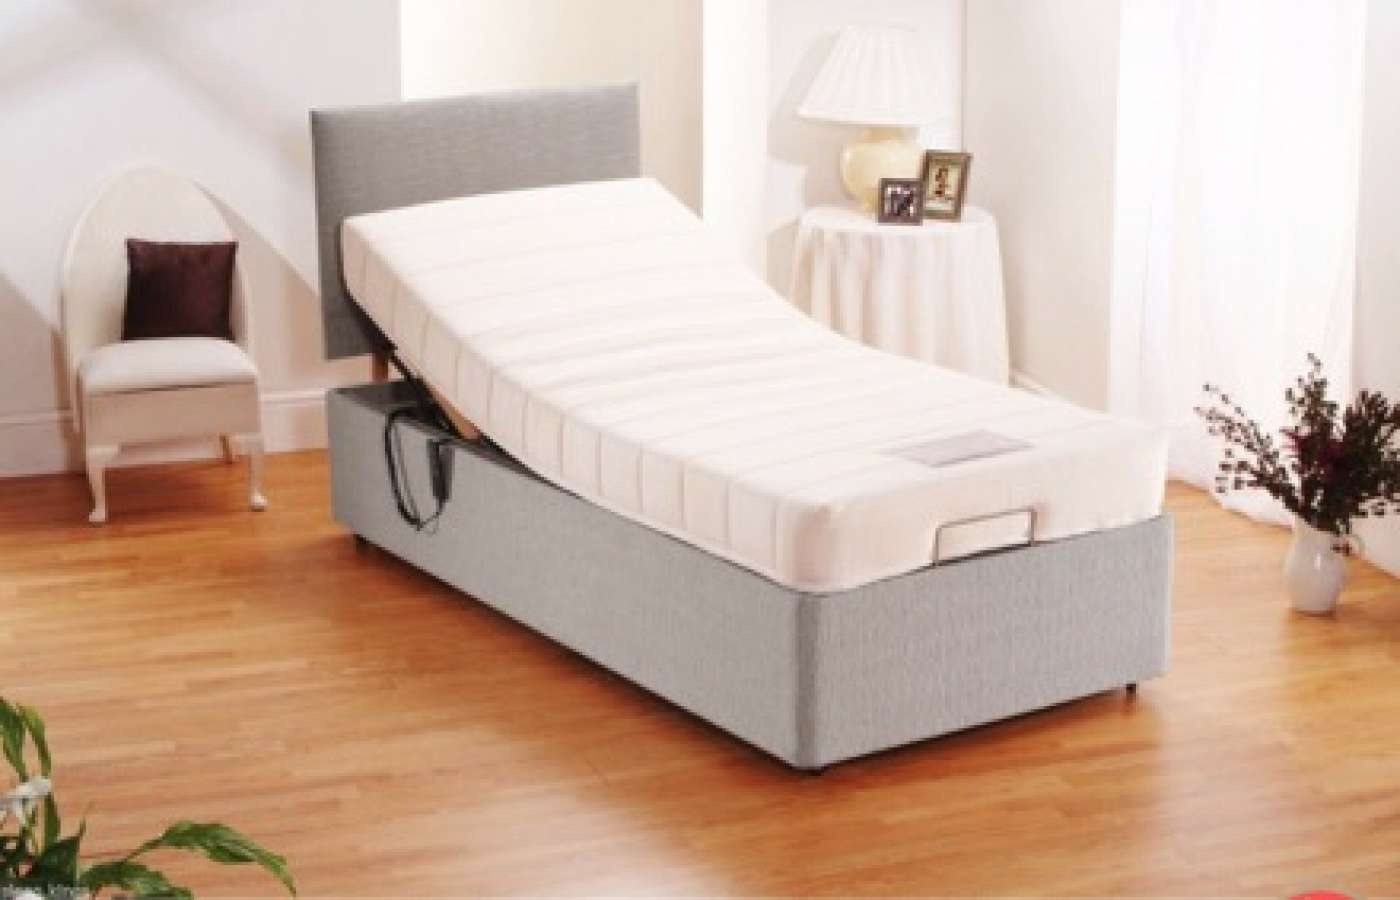 Electric Bed and matching headboard